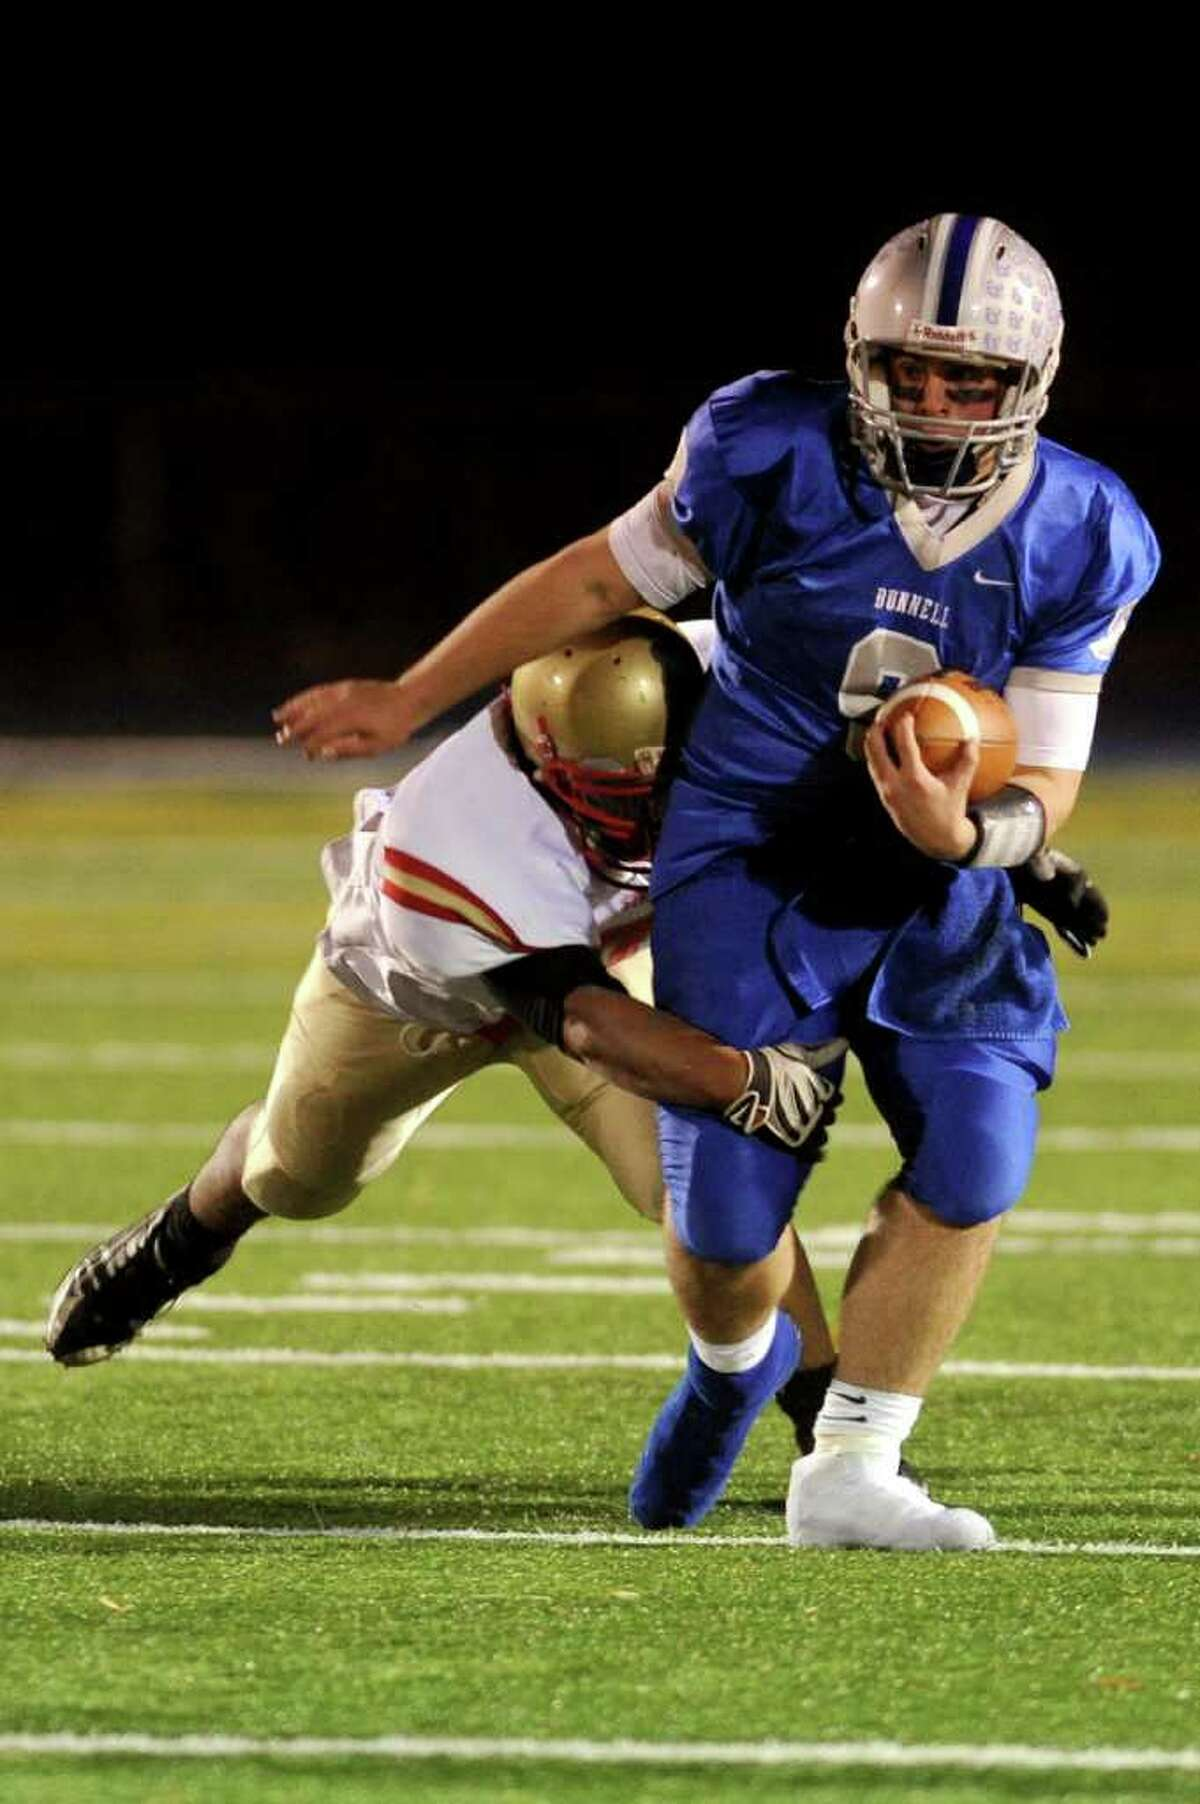 Bunnell's Bryan Castelot carries the ball during Wednesday's game at Bunnell High School on November 24, 2010.